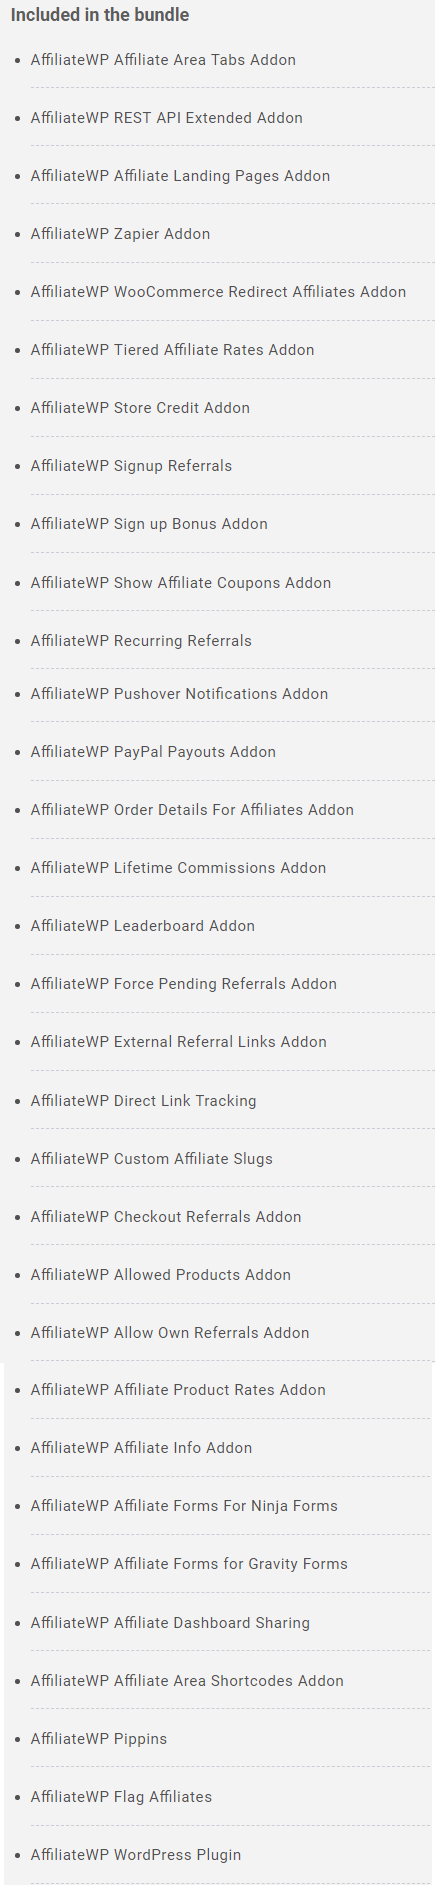 AffiliateWP Bundle (Includes All Add-ons)